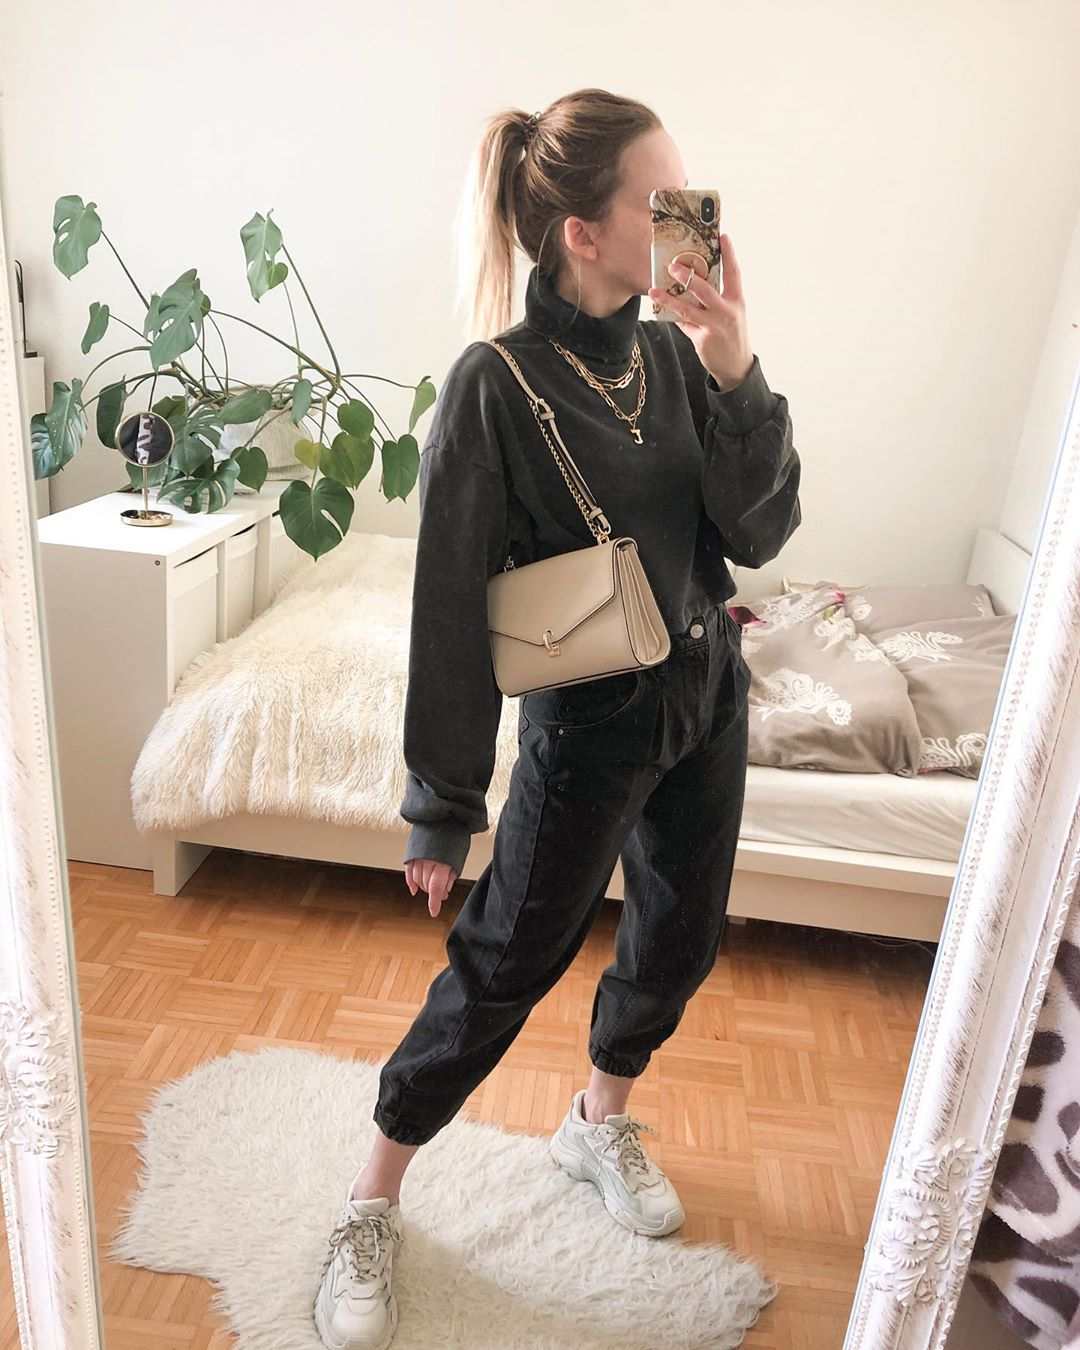 Chunky Sneakers styling